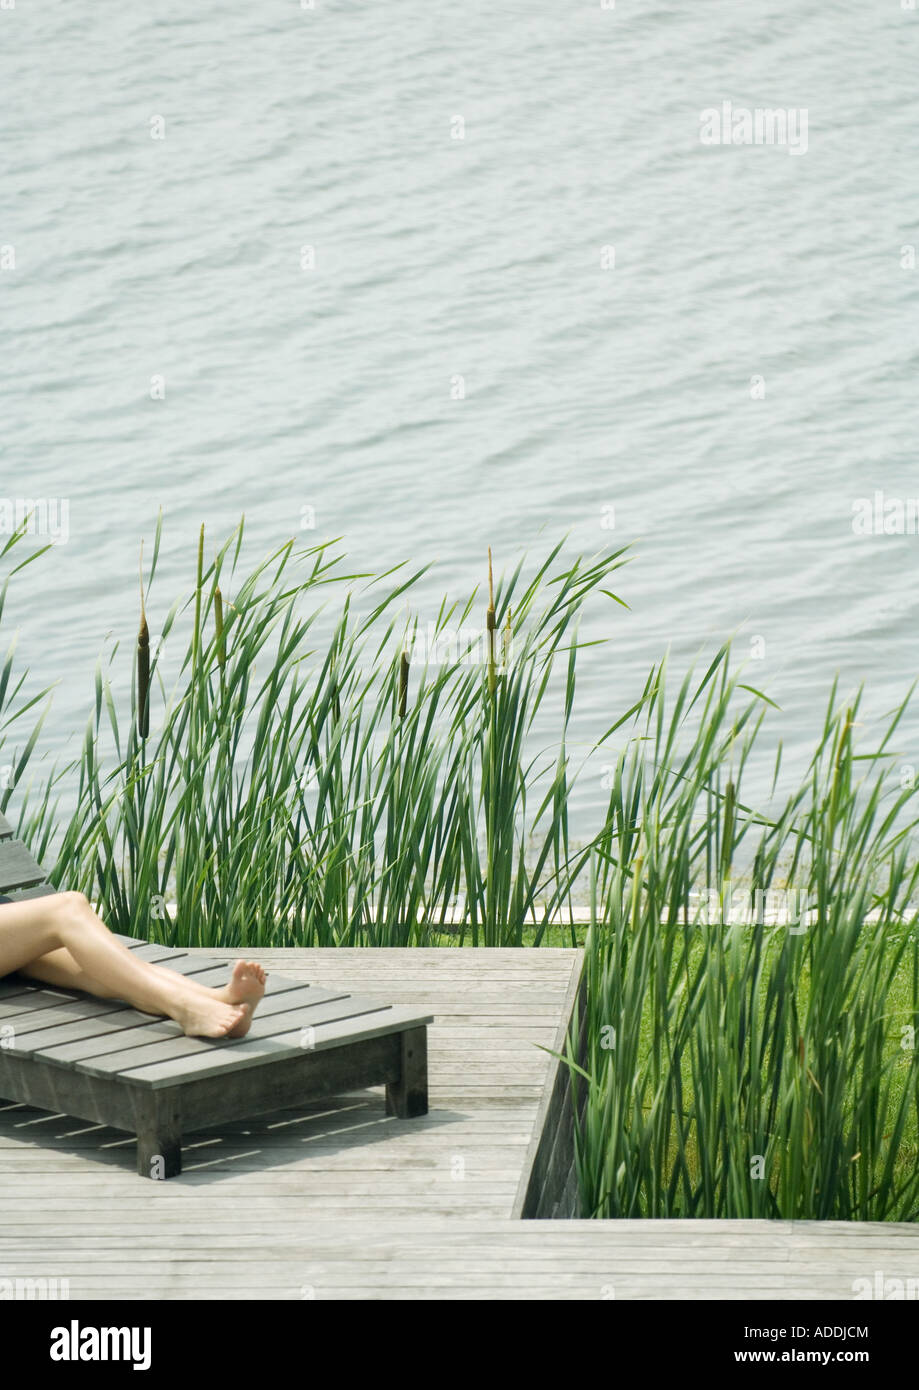 Young woman lying on lounge chair, cropped view of legs - Stock Image